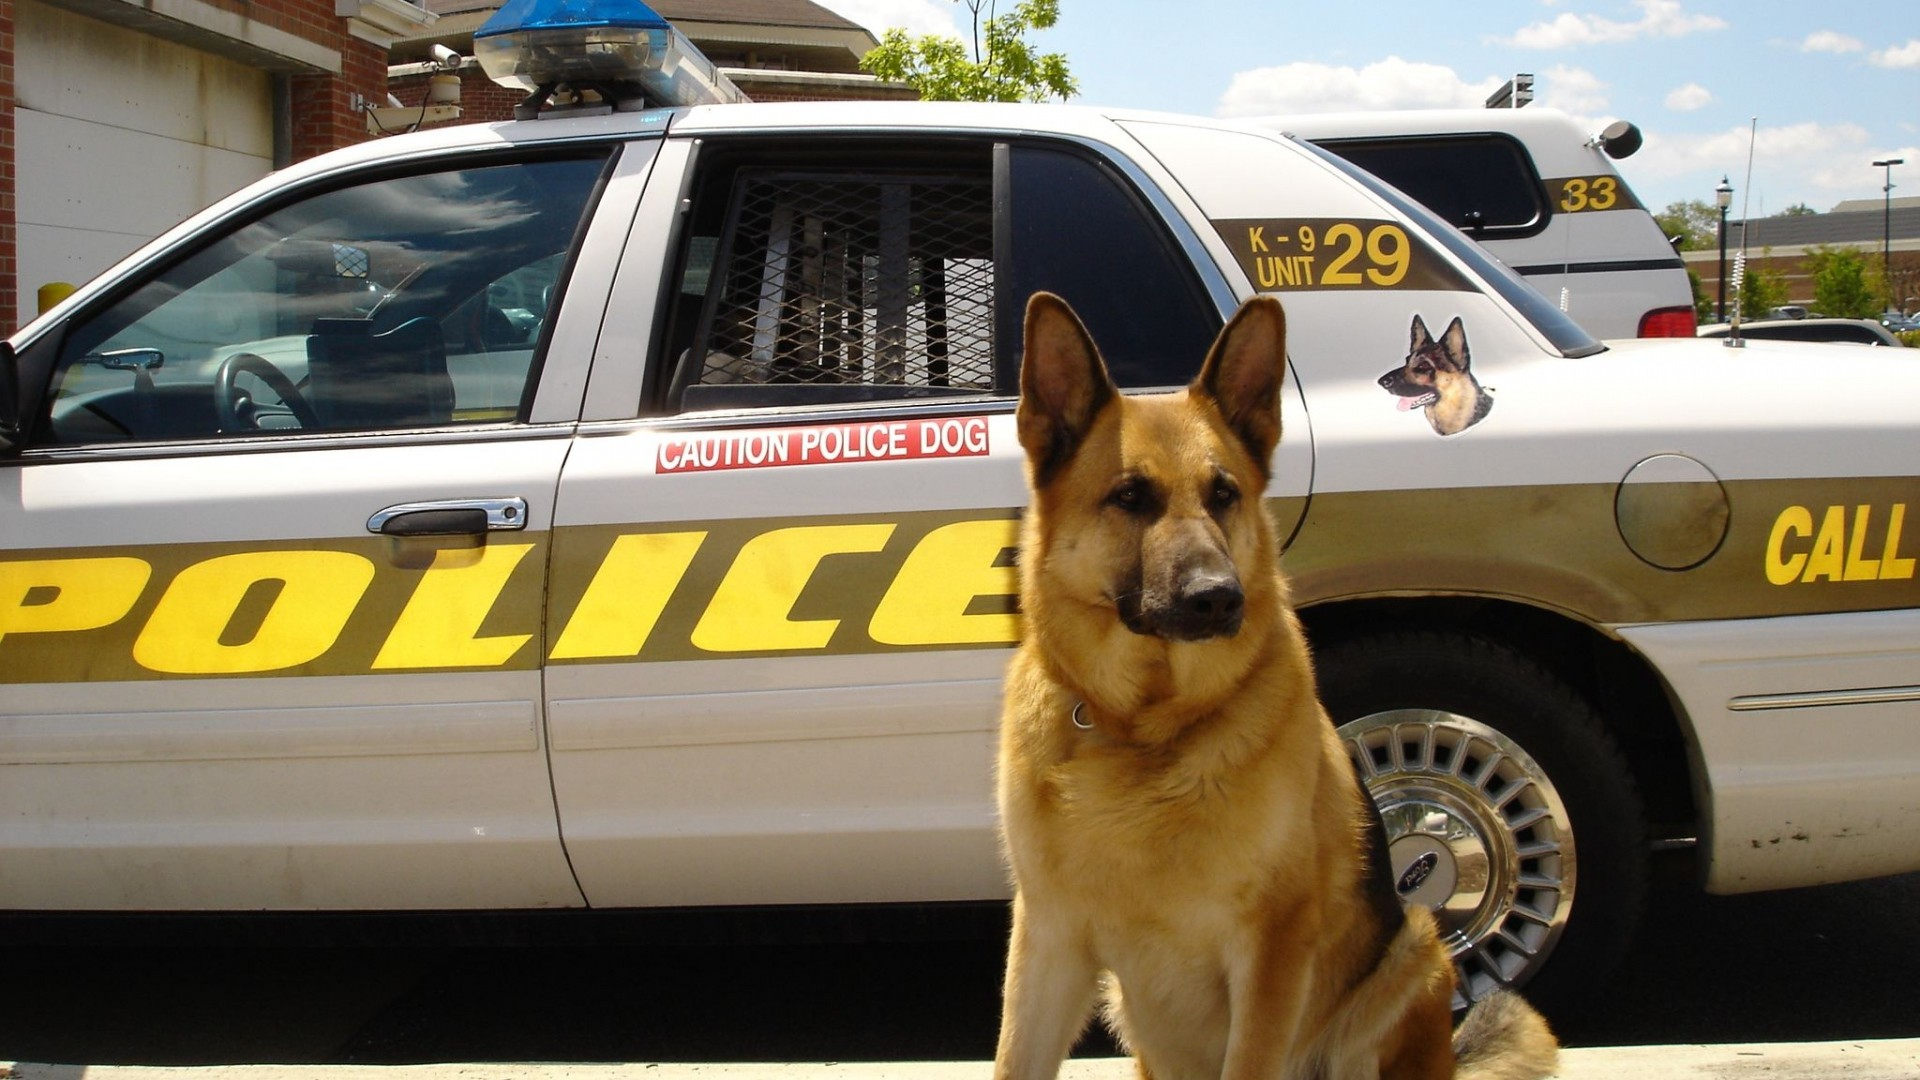 Get the latest dog, sheepdog, police news, pictures and videos and learn  all about dog, sheepdog, police from wallpapers4u.org, your wallpaper news  source.